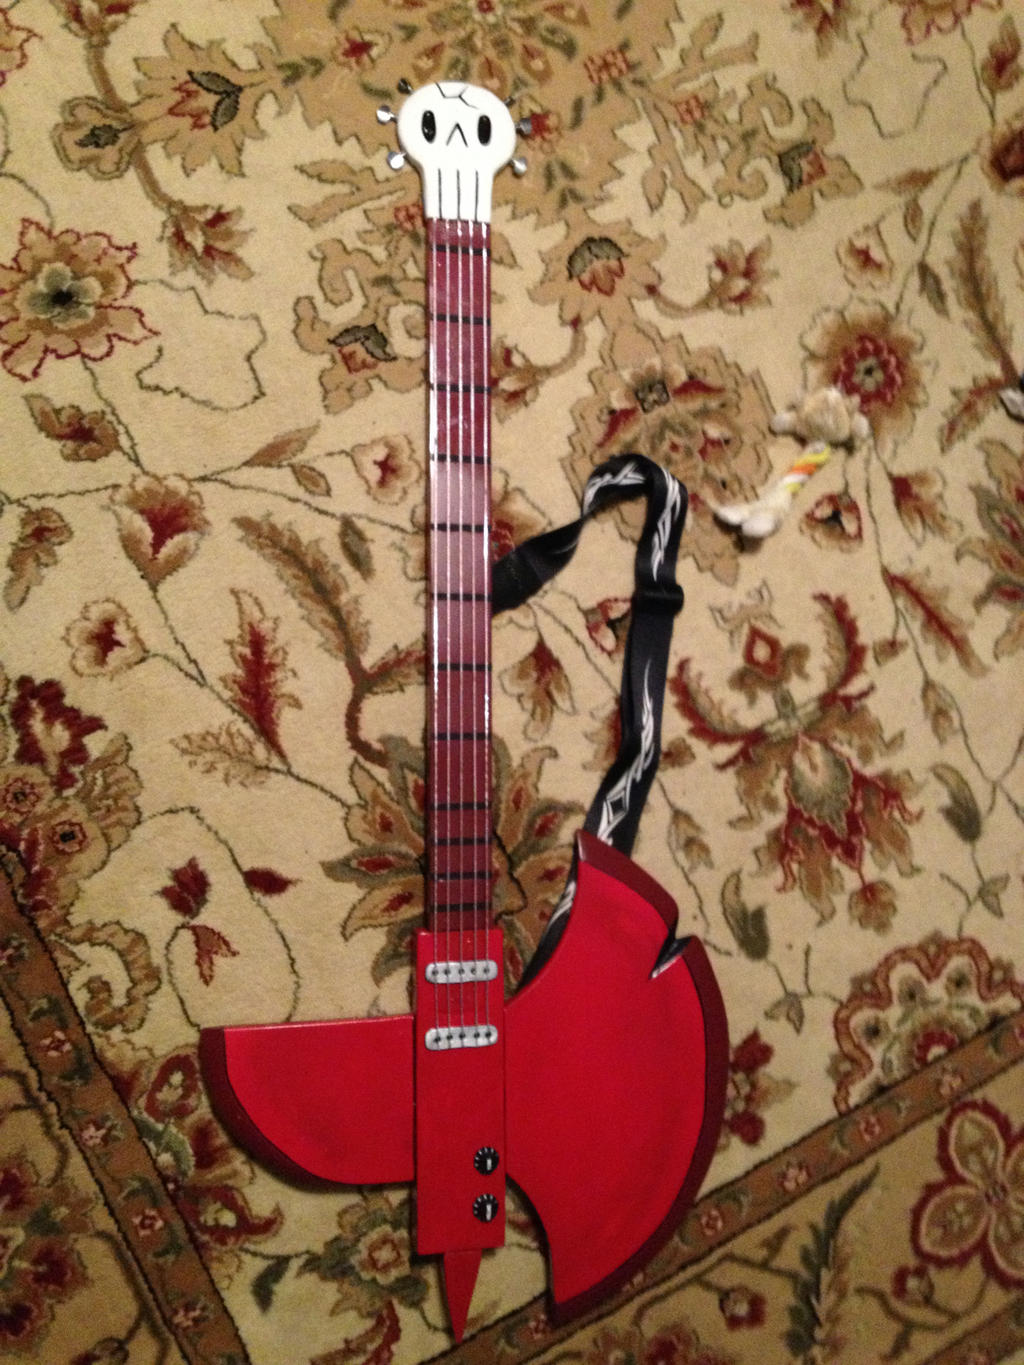 Marshall Lee axe guitar by Tannorsmanga on DeviantArt